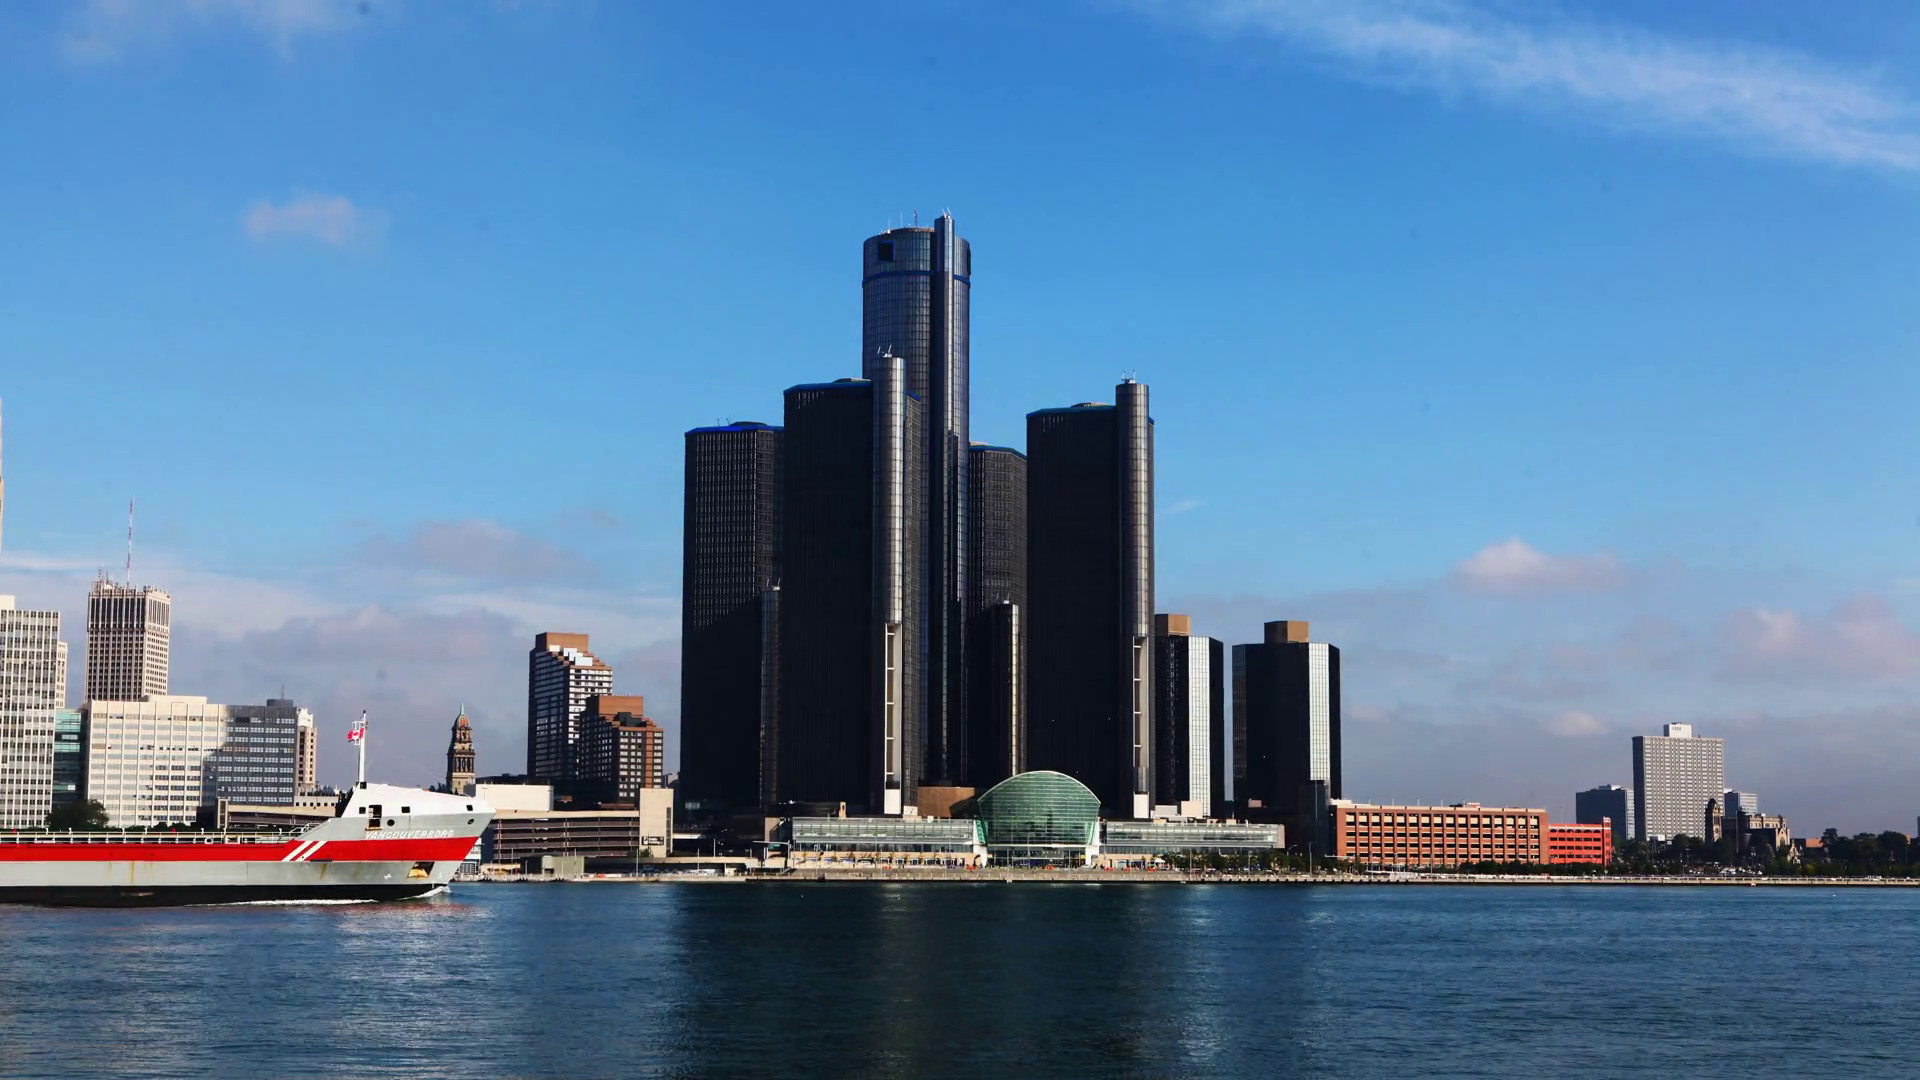 Res: 1920x1080, 4K UltraHD A Timelapse of the Detroit skyline across the river Stock Video  Footage - Videoblocks